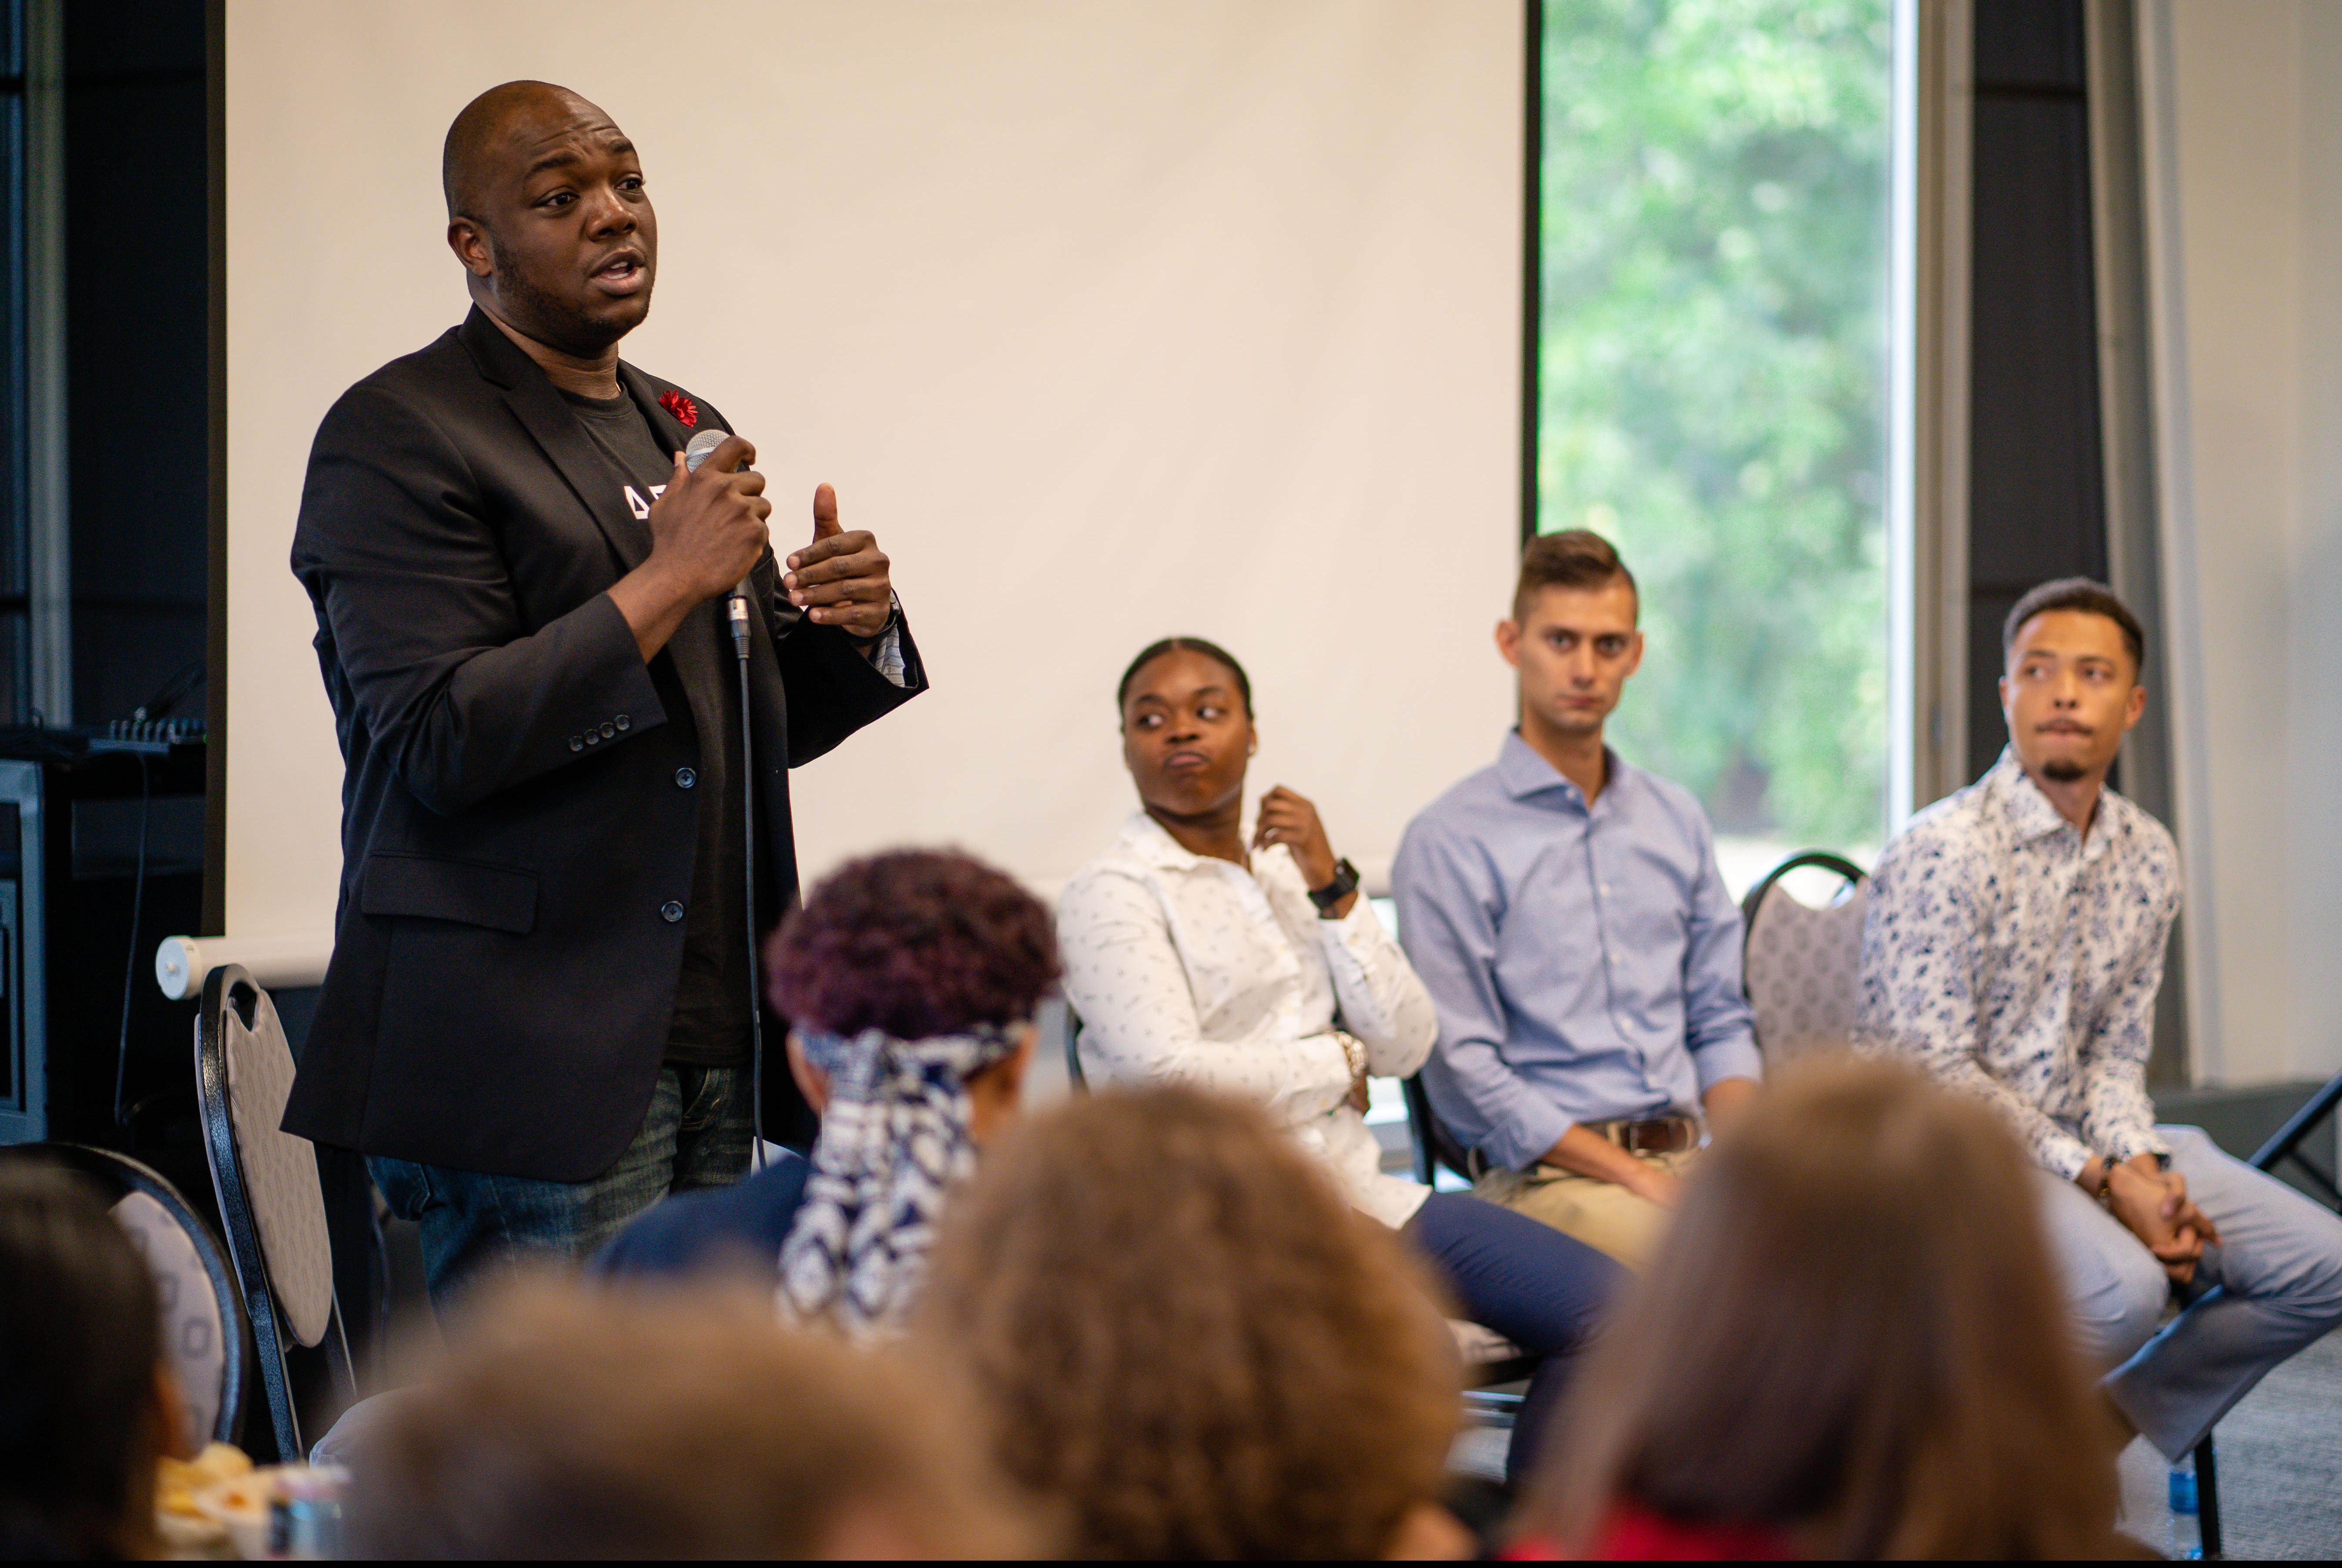 Man speaking with students